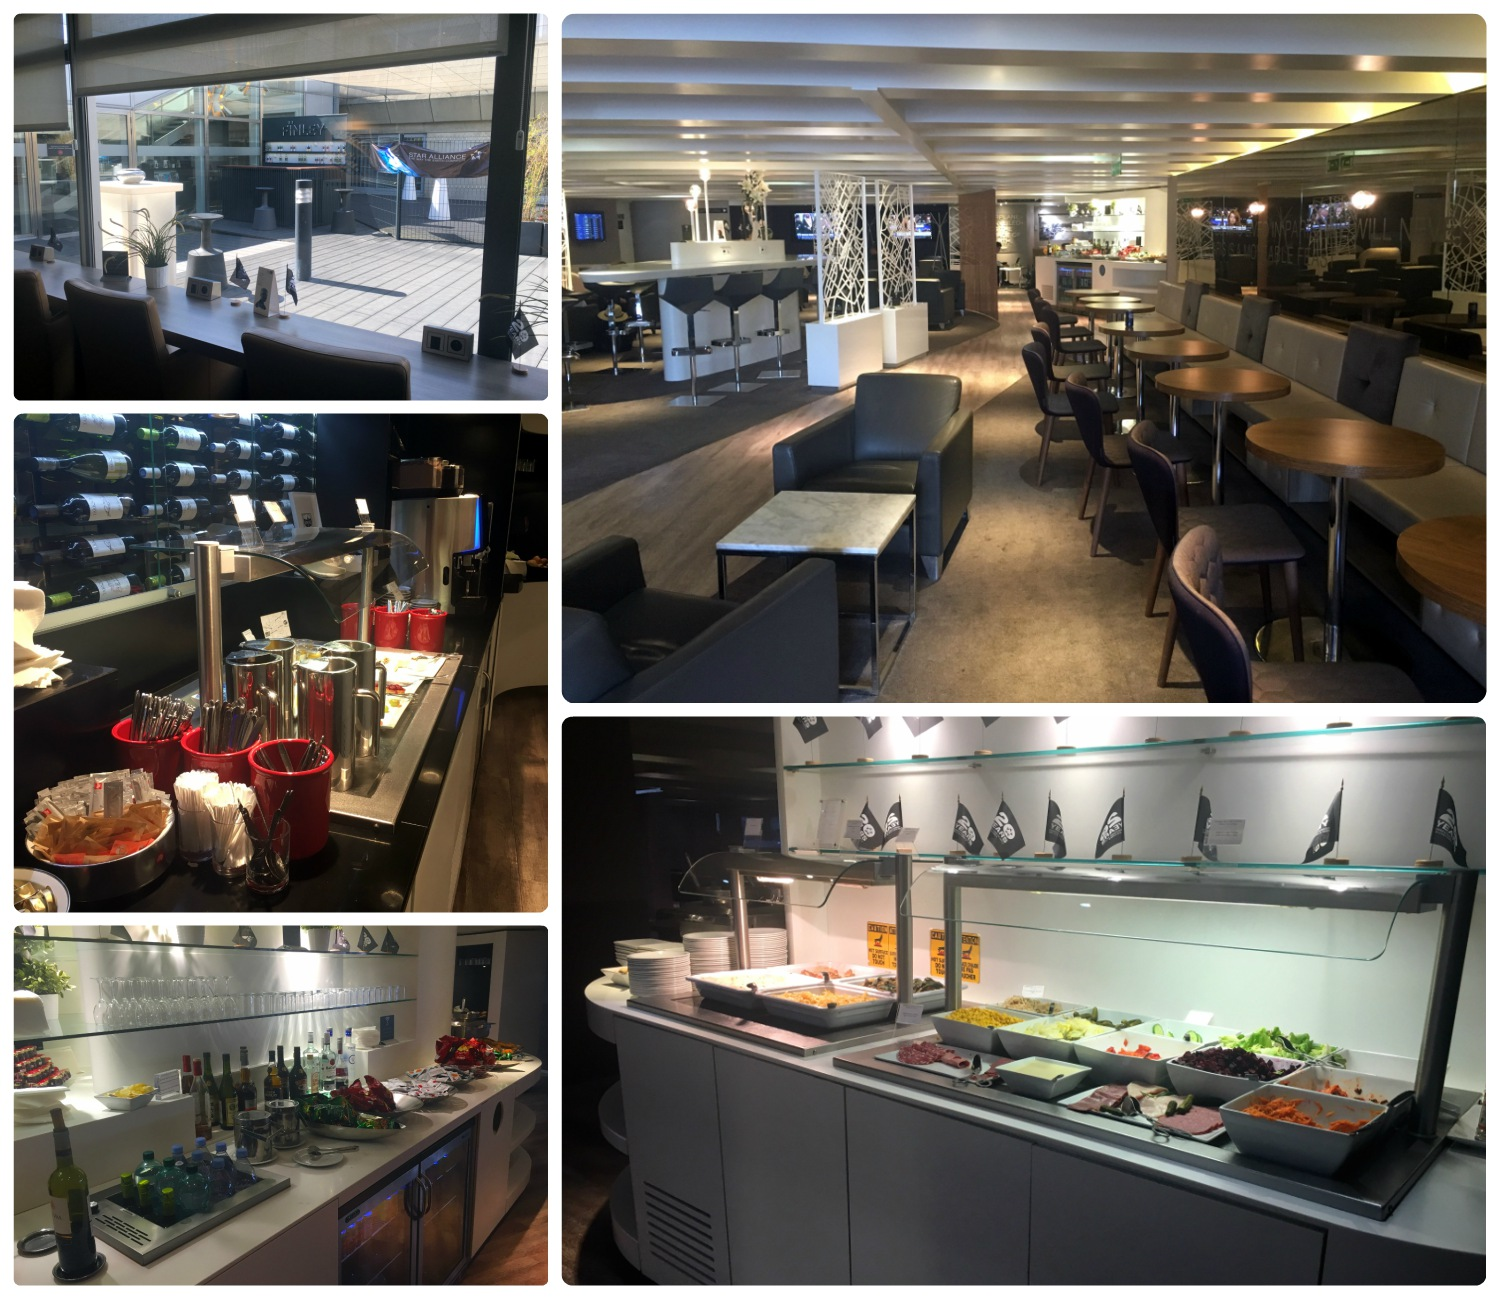 All images were taken at the Star Alliance Lounge at the Charles de Gaulle Airport (CDG). Clockwise (from the top): View into the lounge patio area, view of the lounge and various seating, array of food - including hot dishes, snack and bar area, drink and dessert area.